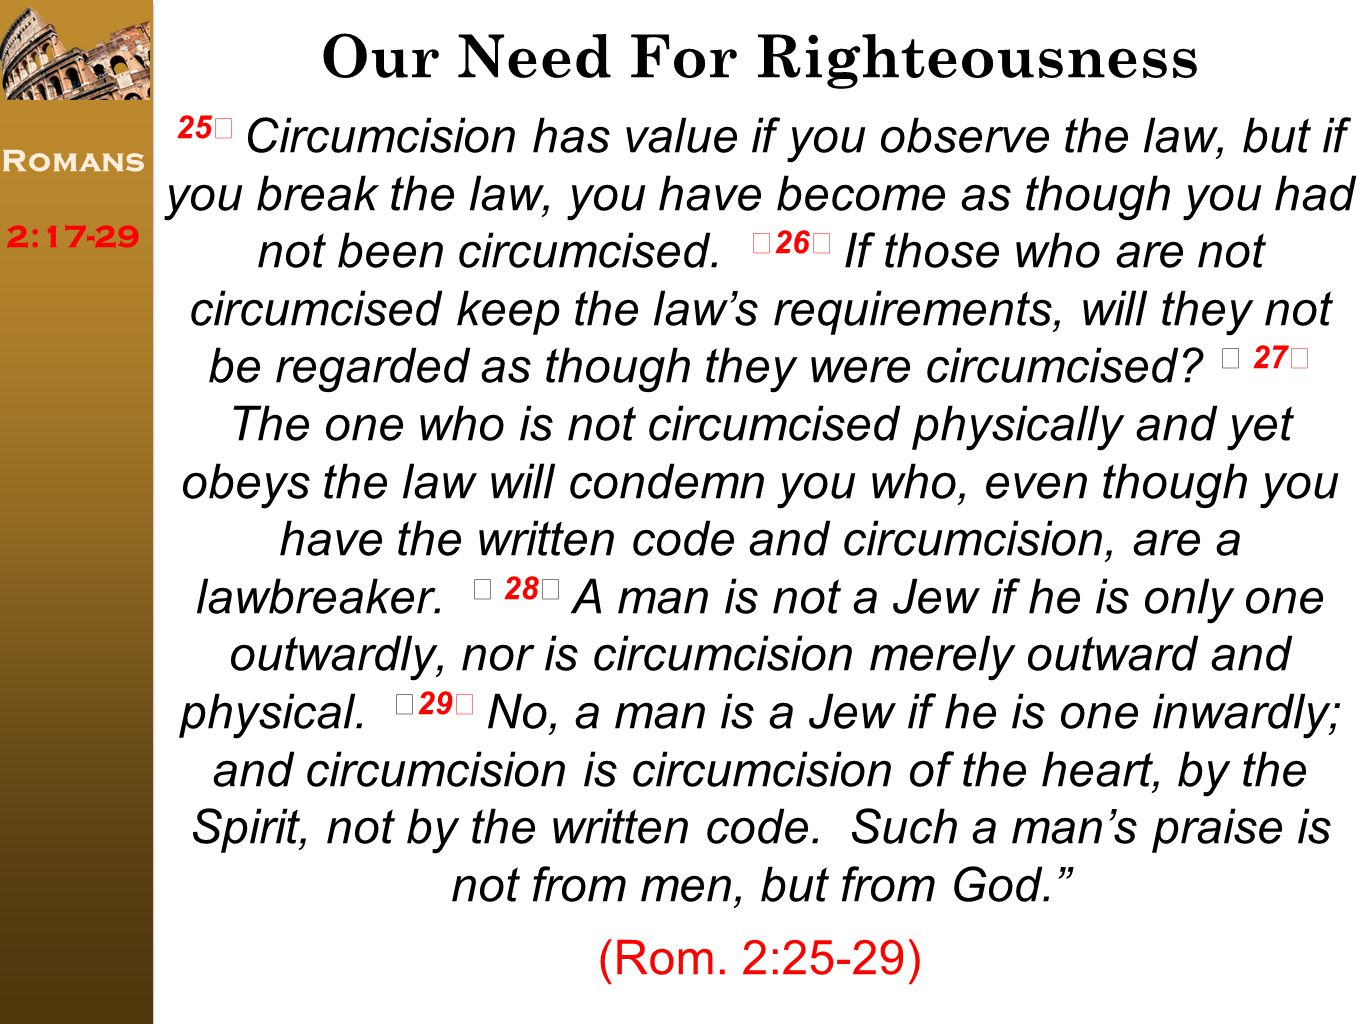 Romans 2:17-29 Our Need For Righteousness 25 Circumcision has value if you observe the law, but if you break the law, you have become as though you had not been circumcised.